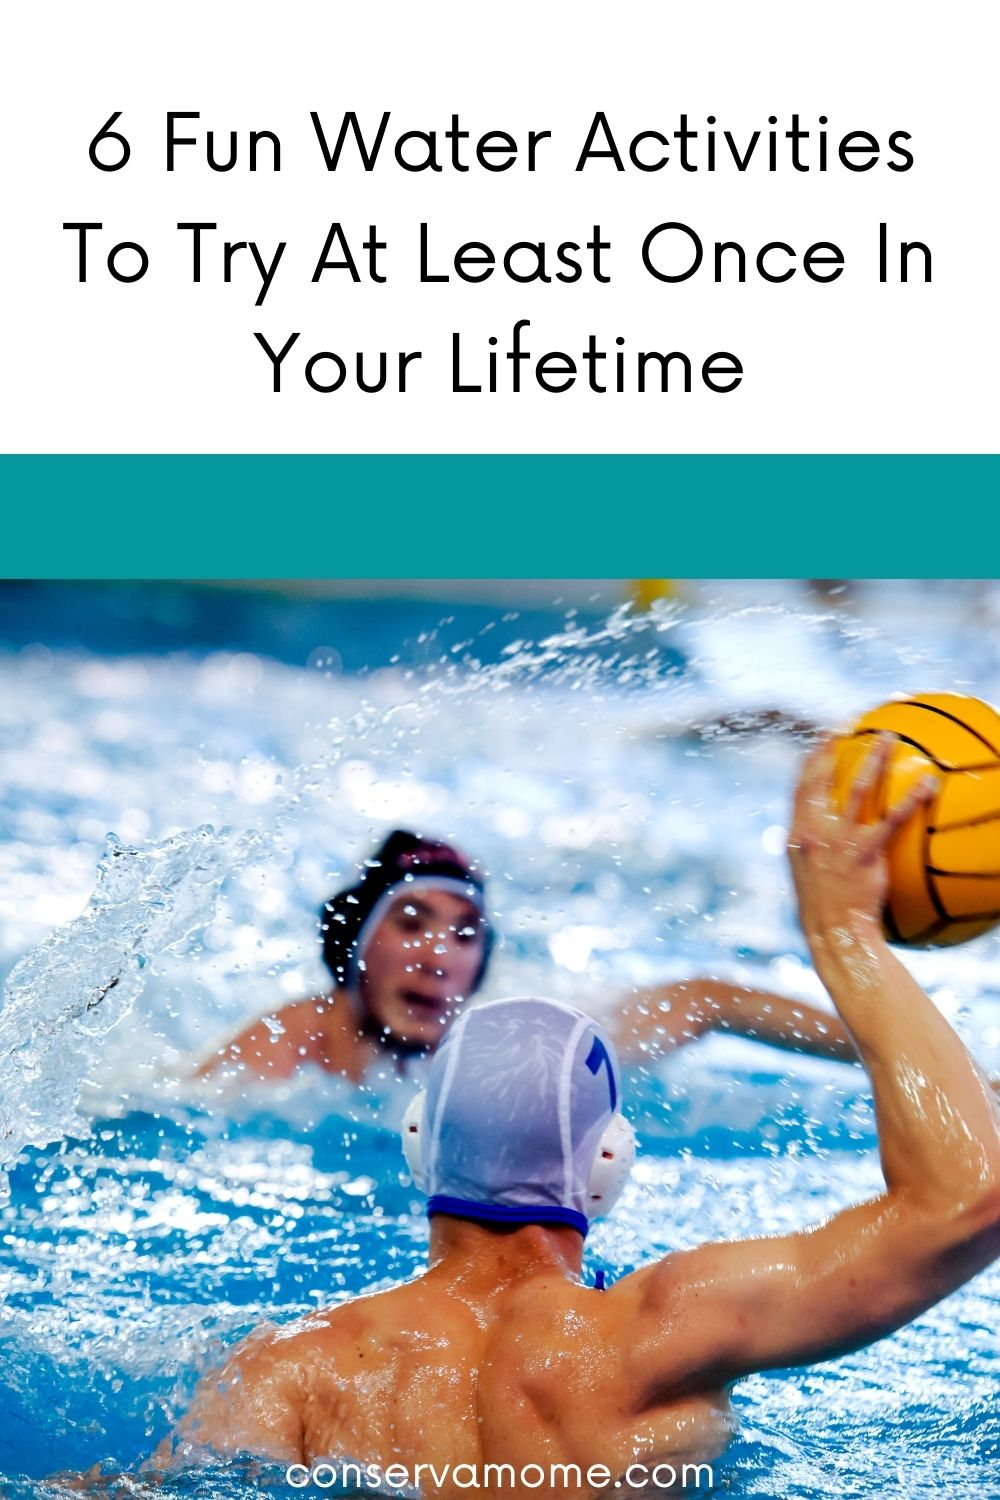 6 Fun Water Activities To Try At Least Once In Your Lifetime (1)